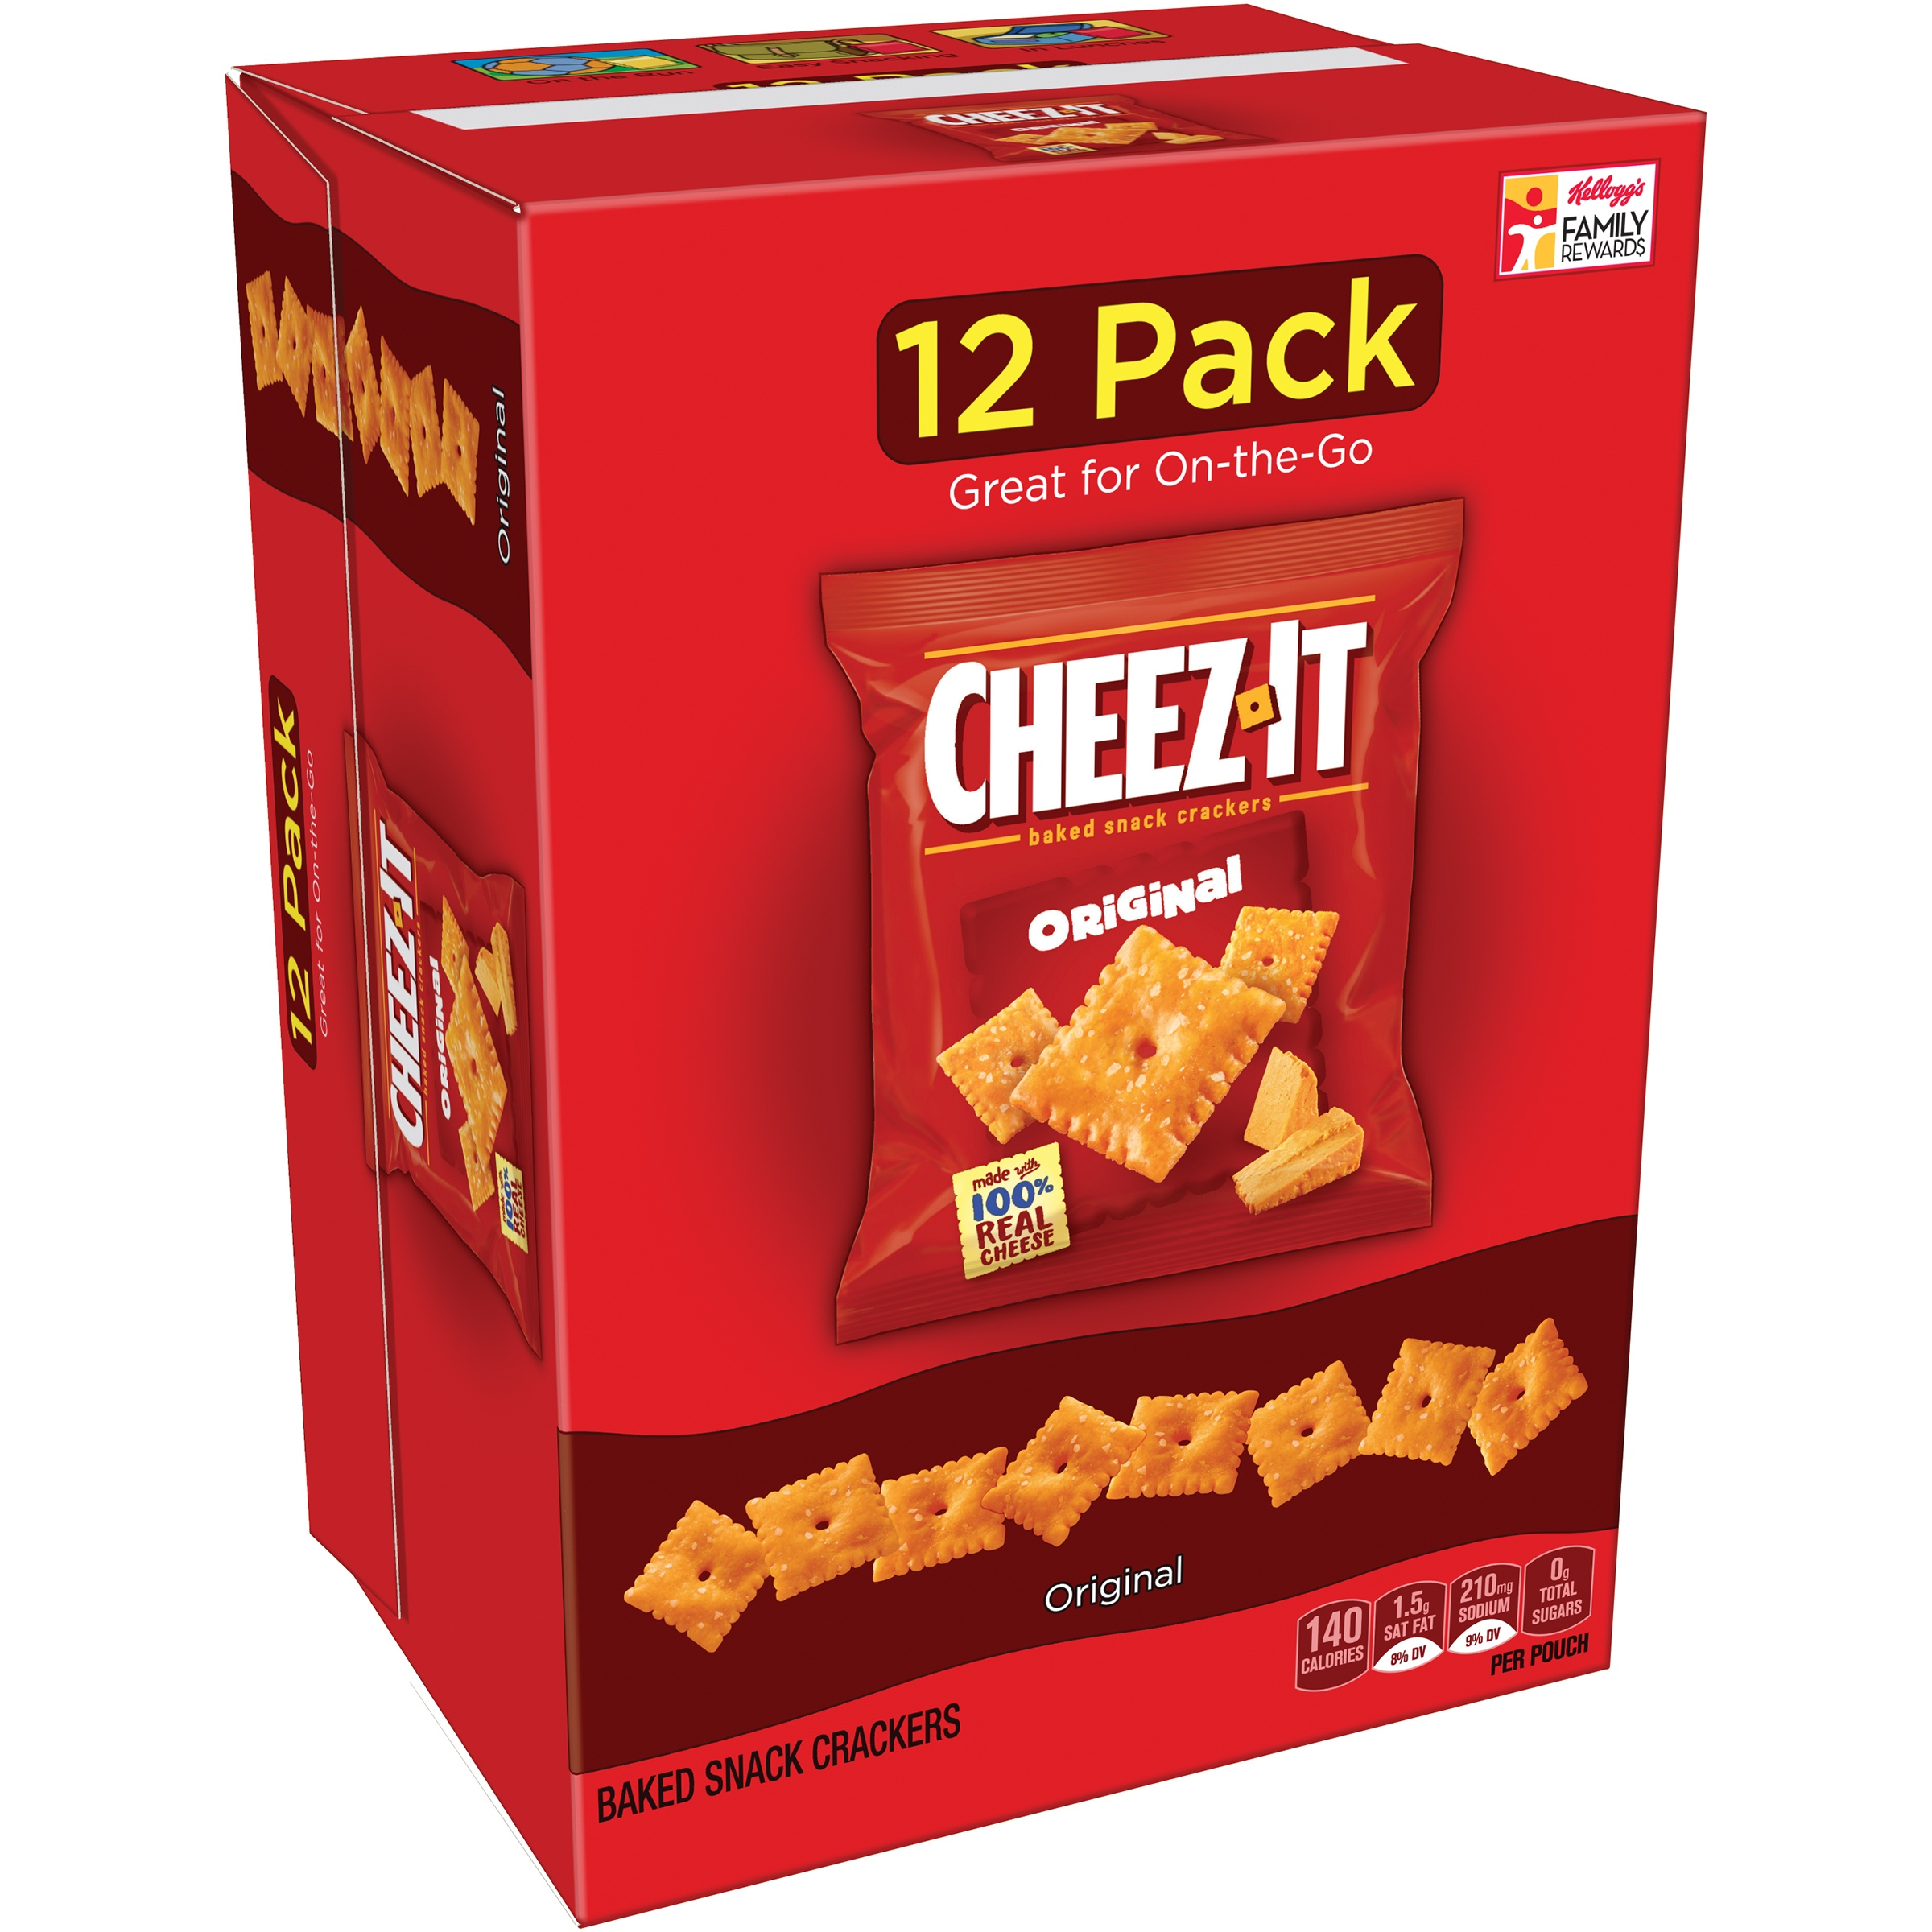 Cheez-It Original Baked Snack Crackers 12.1 Oz, 12 Ct by Sunshine Biscuits, LLC.